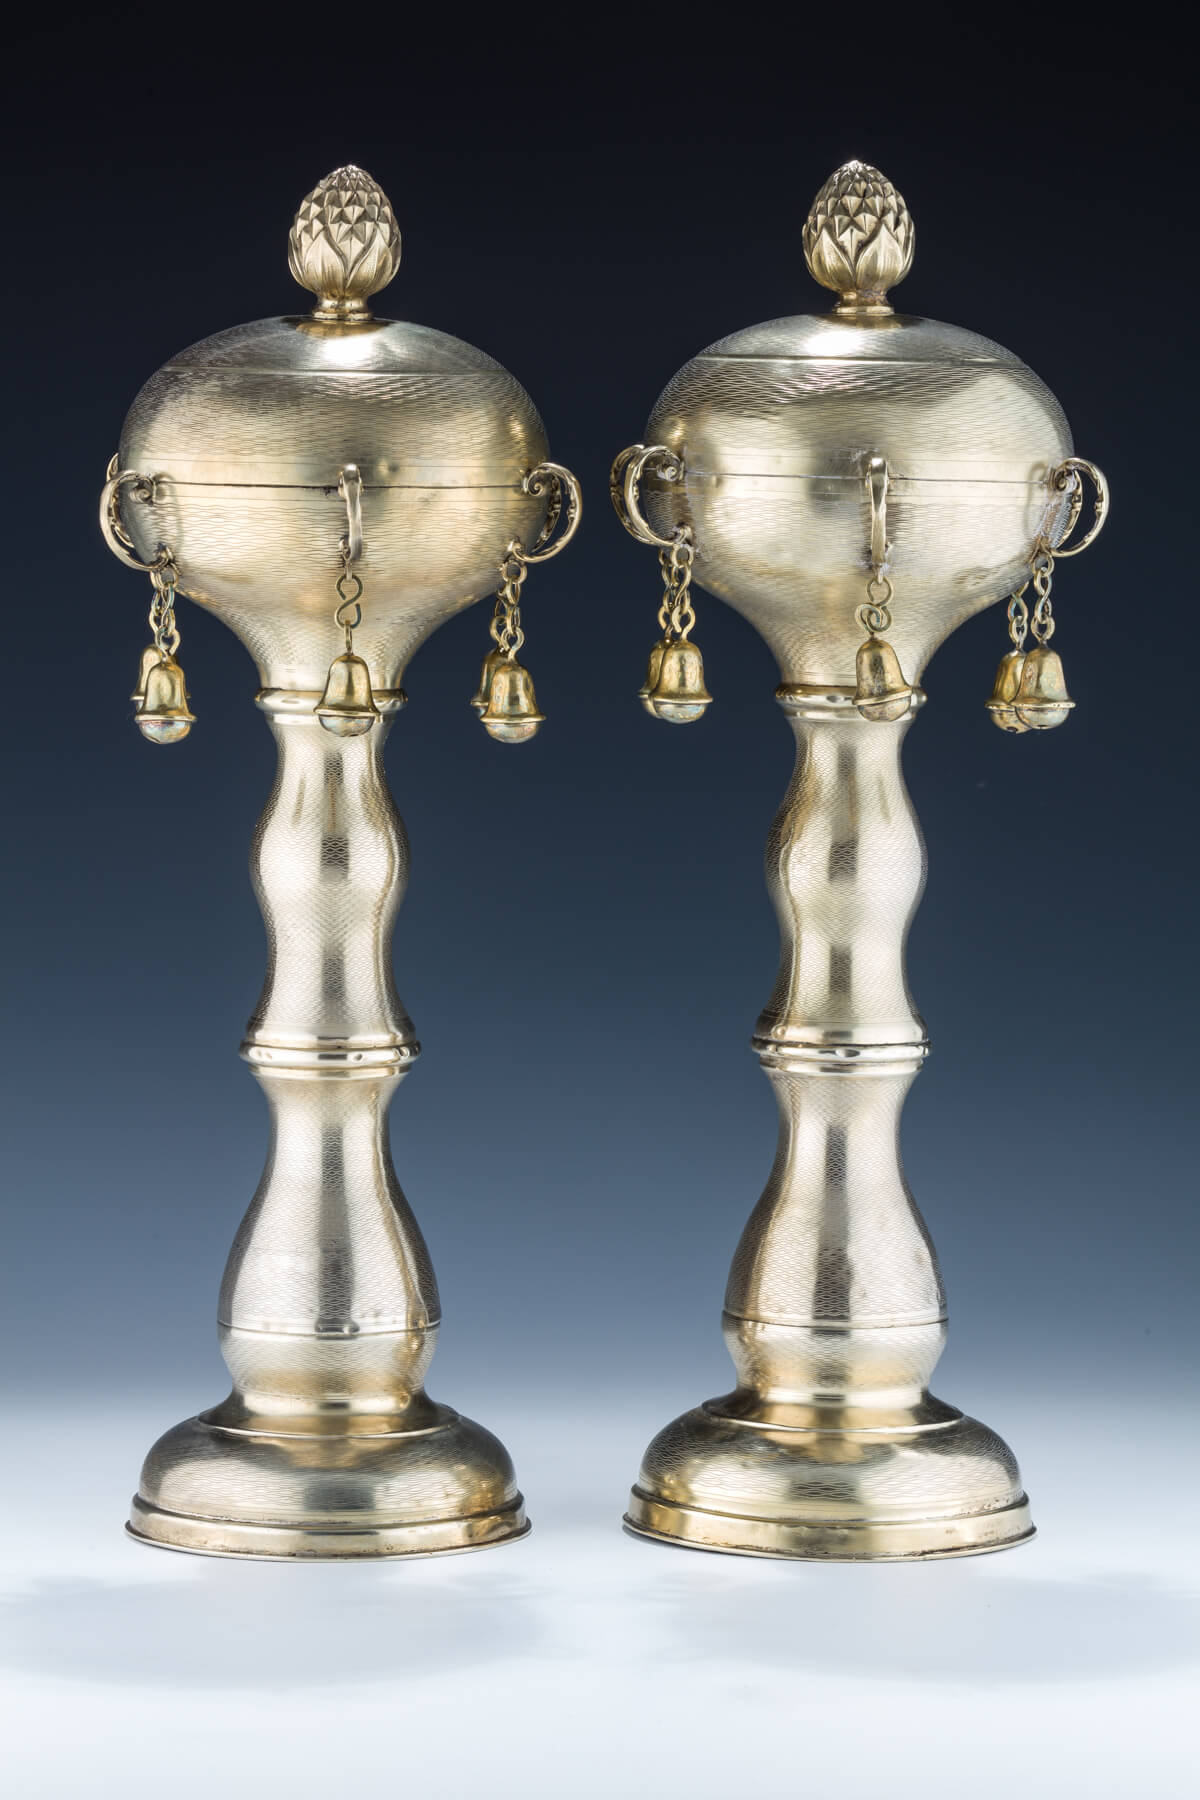 104. A Monumental Pair of Gilded Silver Torah Finials